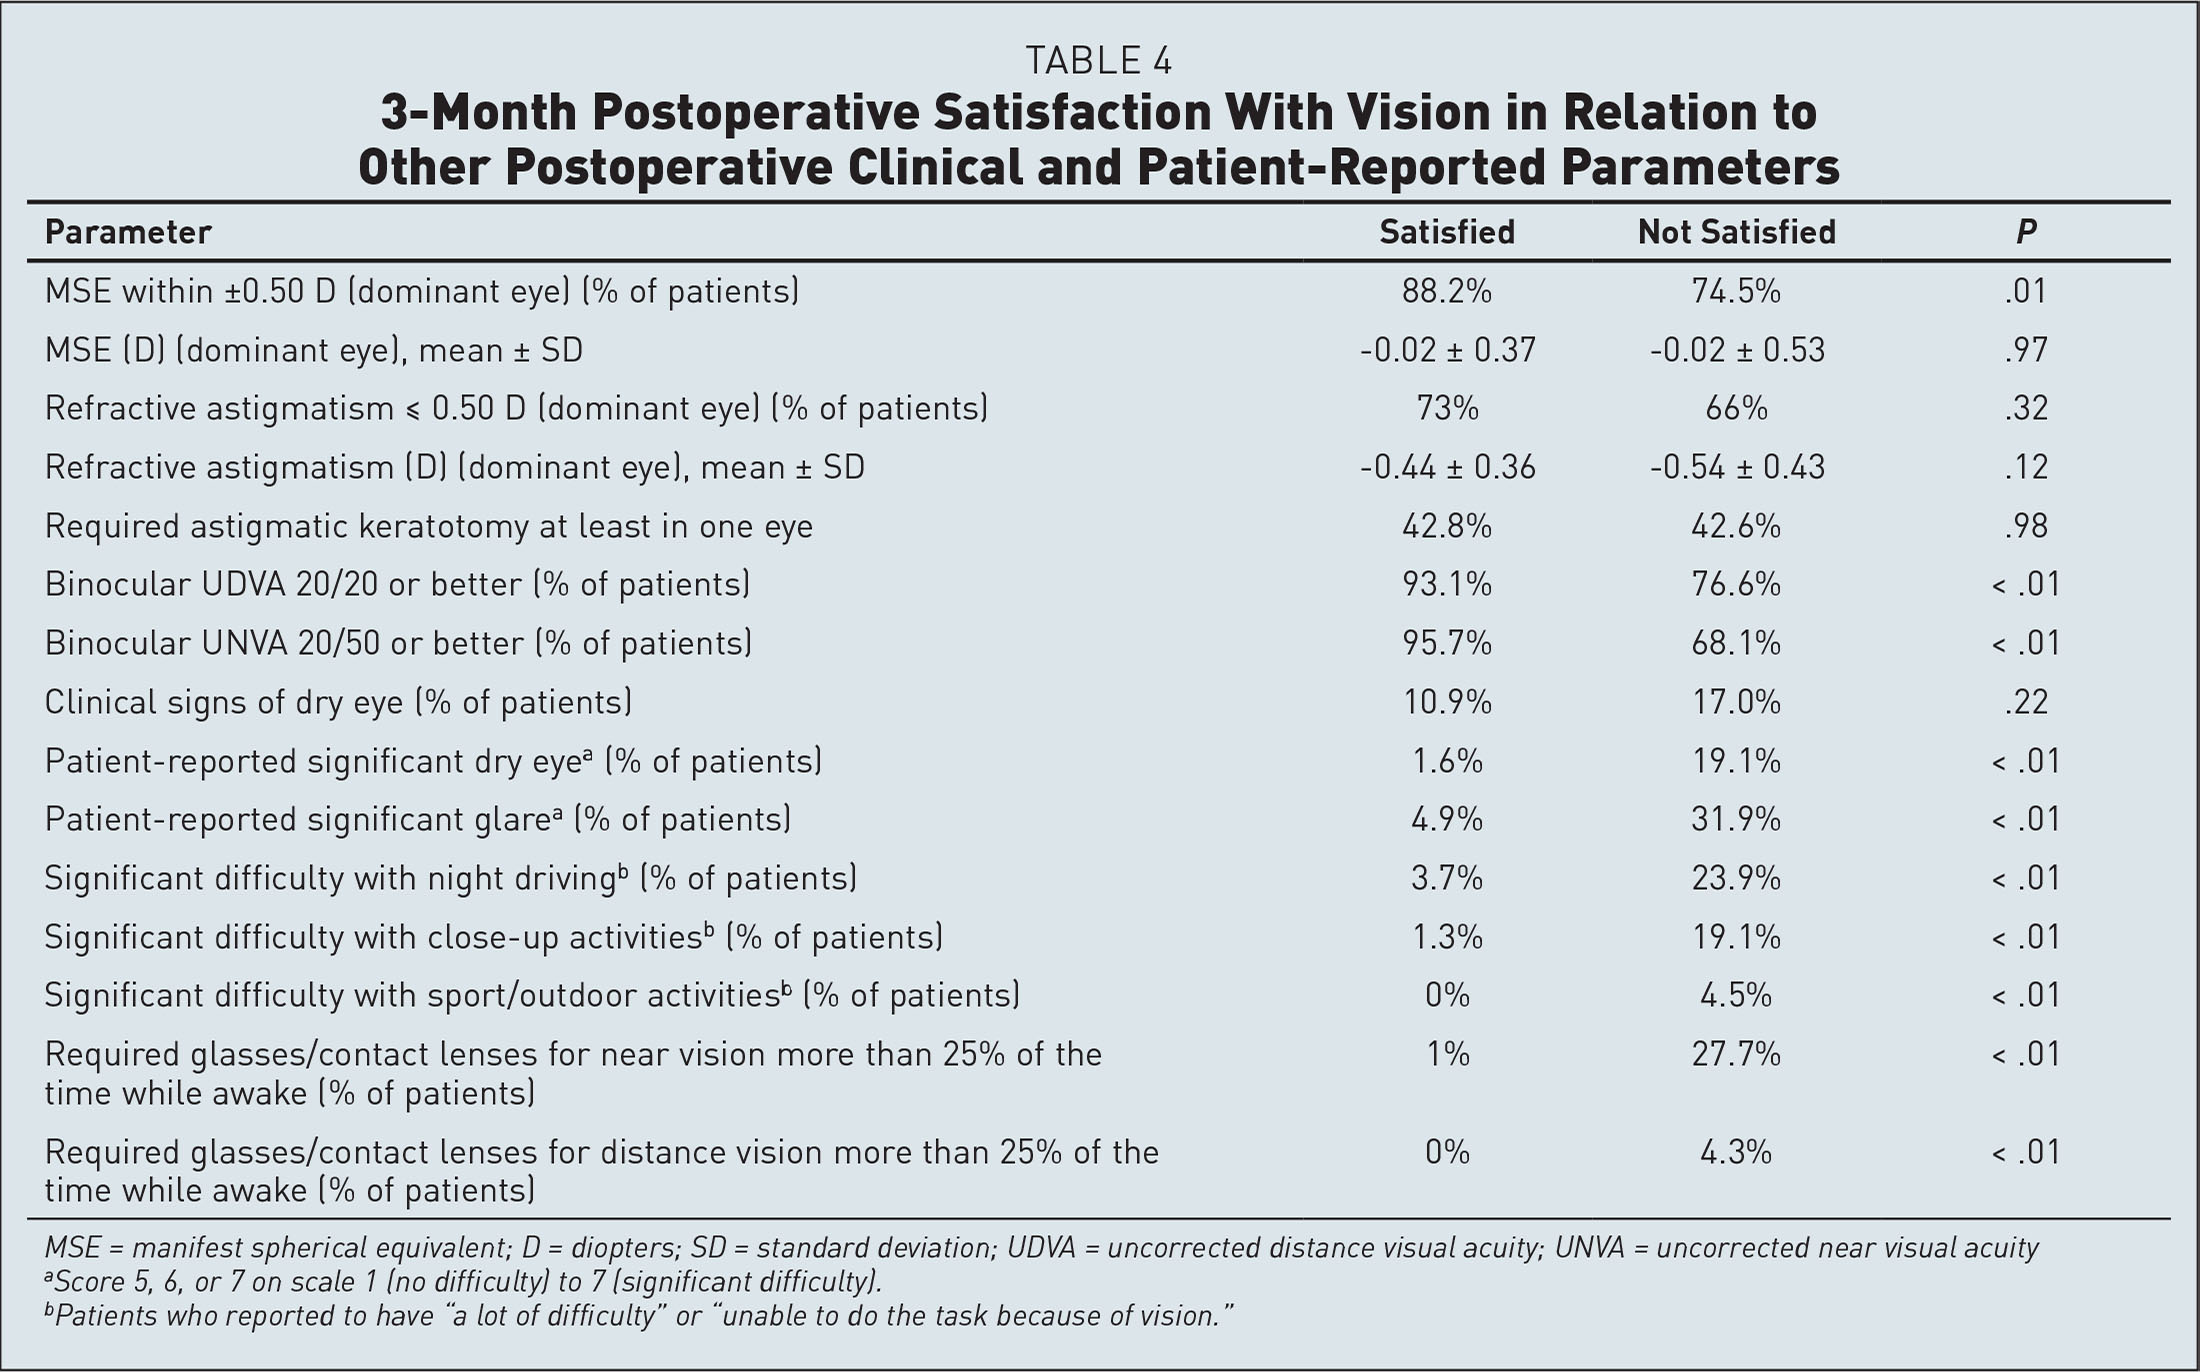 3-Month Postoperative Satisfaction With Vision in Relation to Other Postoperative Clinical and Patient-Reported Parameters